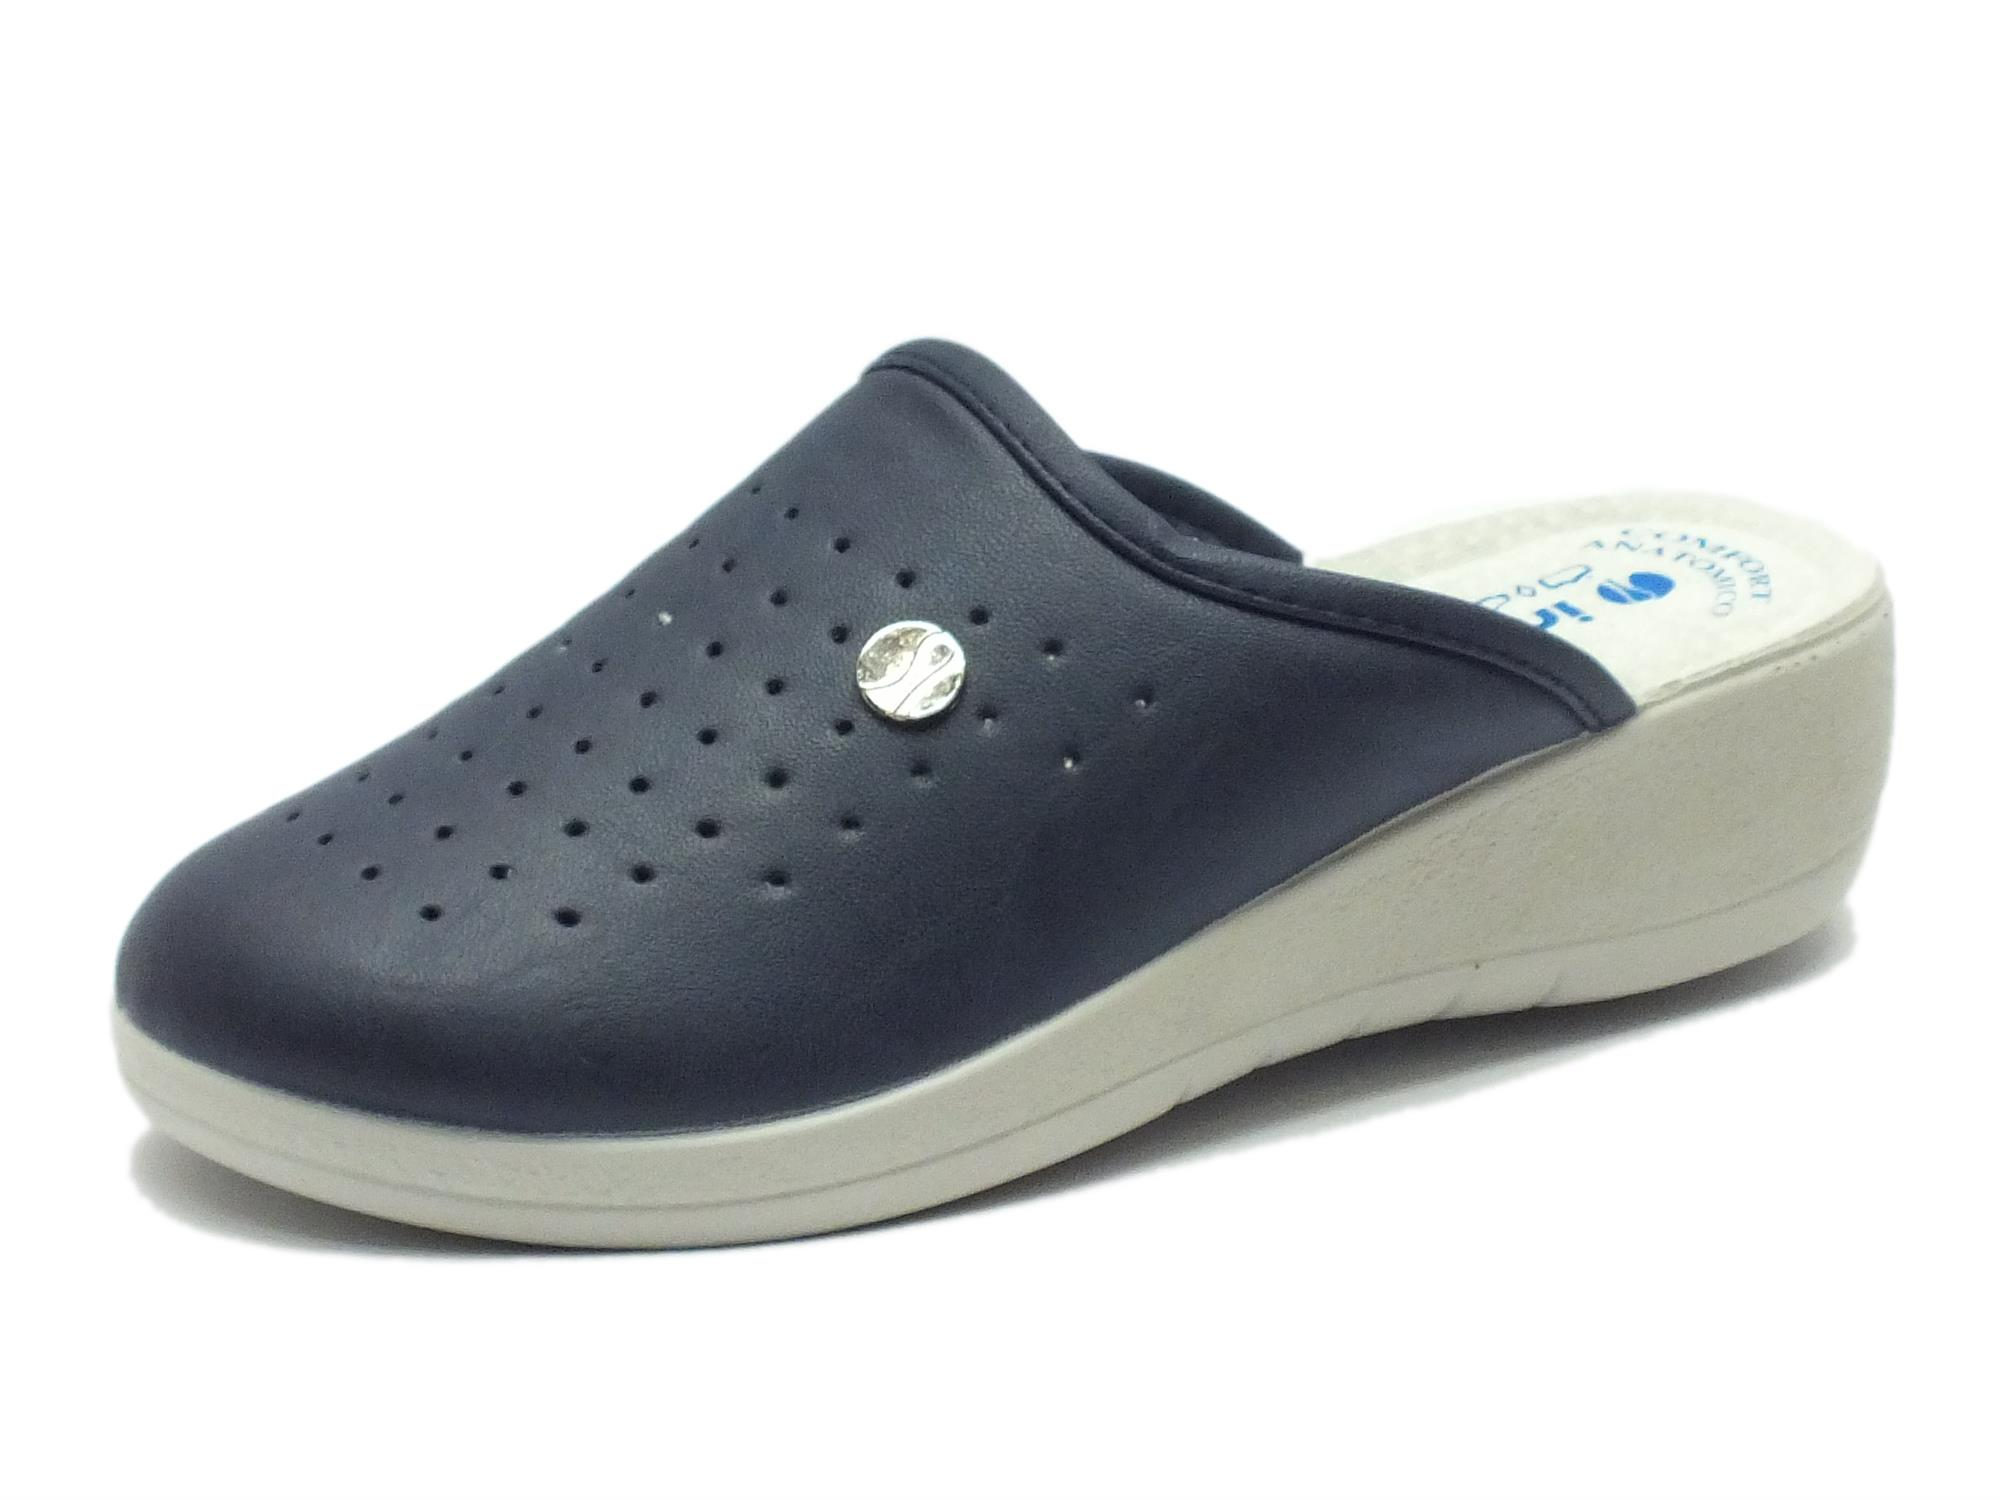 acd55faef6 Pantofola inblu per donna in eco-pelle blu